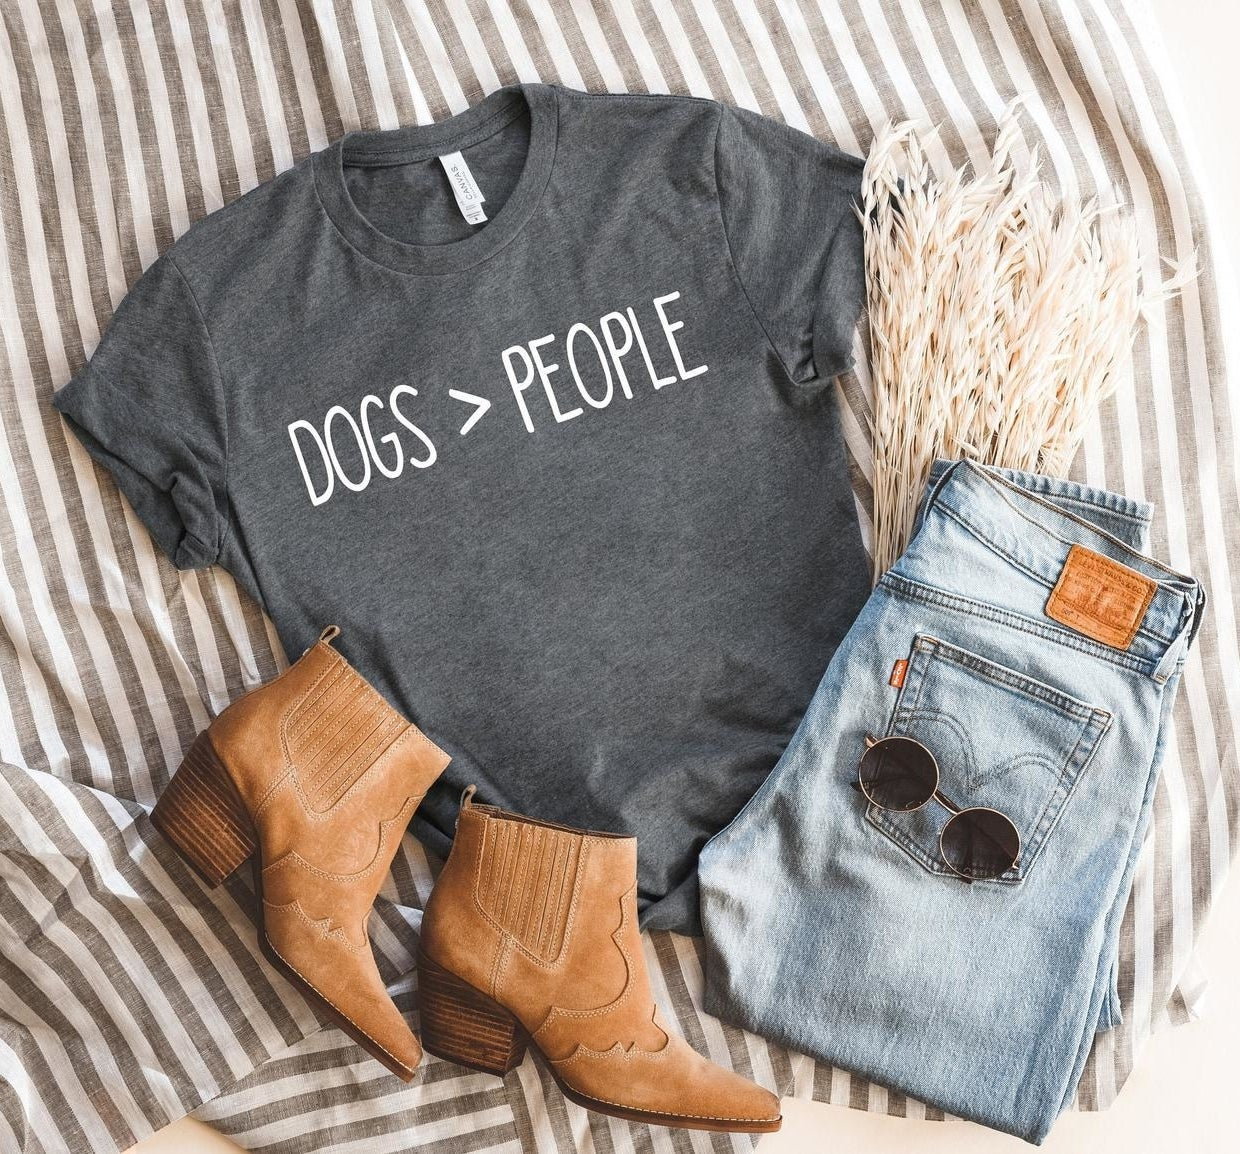 """Flatlay shot of the T-shirt that says """"Dogs > people"""" with a complete outfit of boots and jeans"""